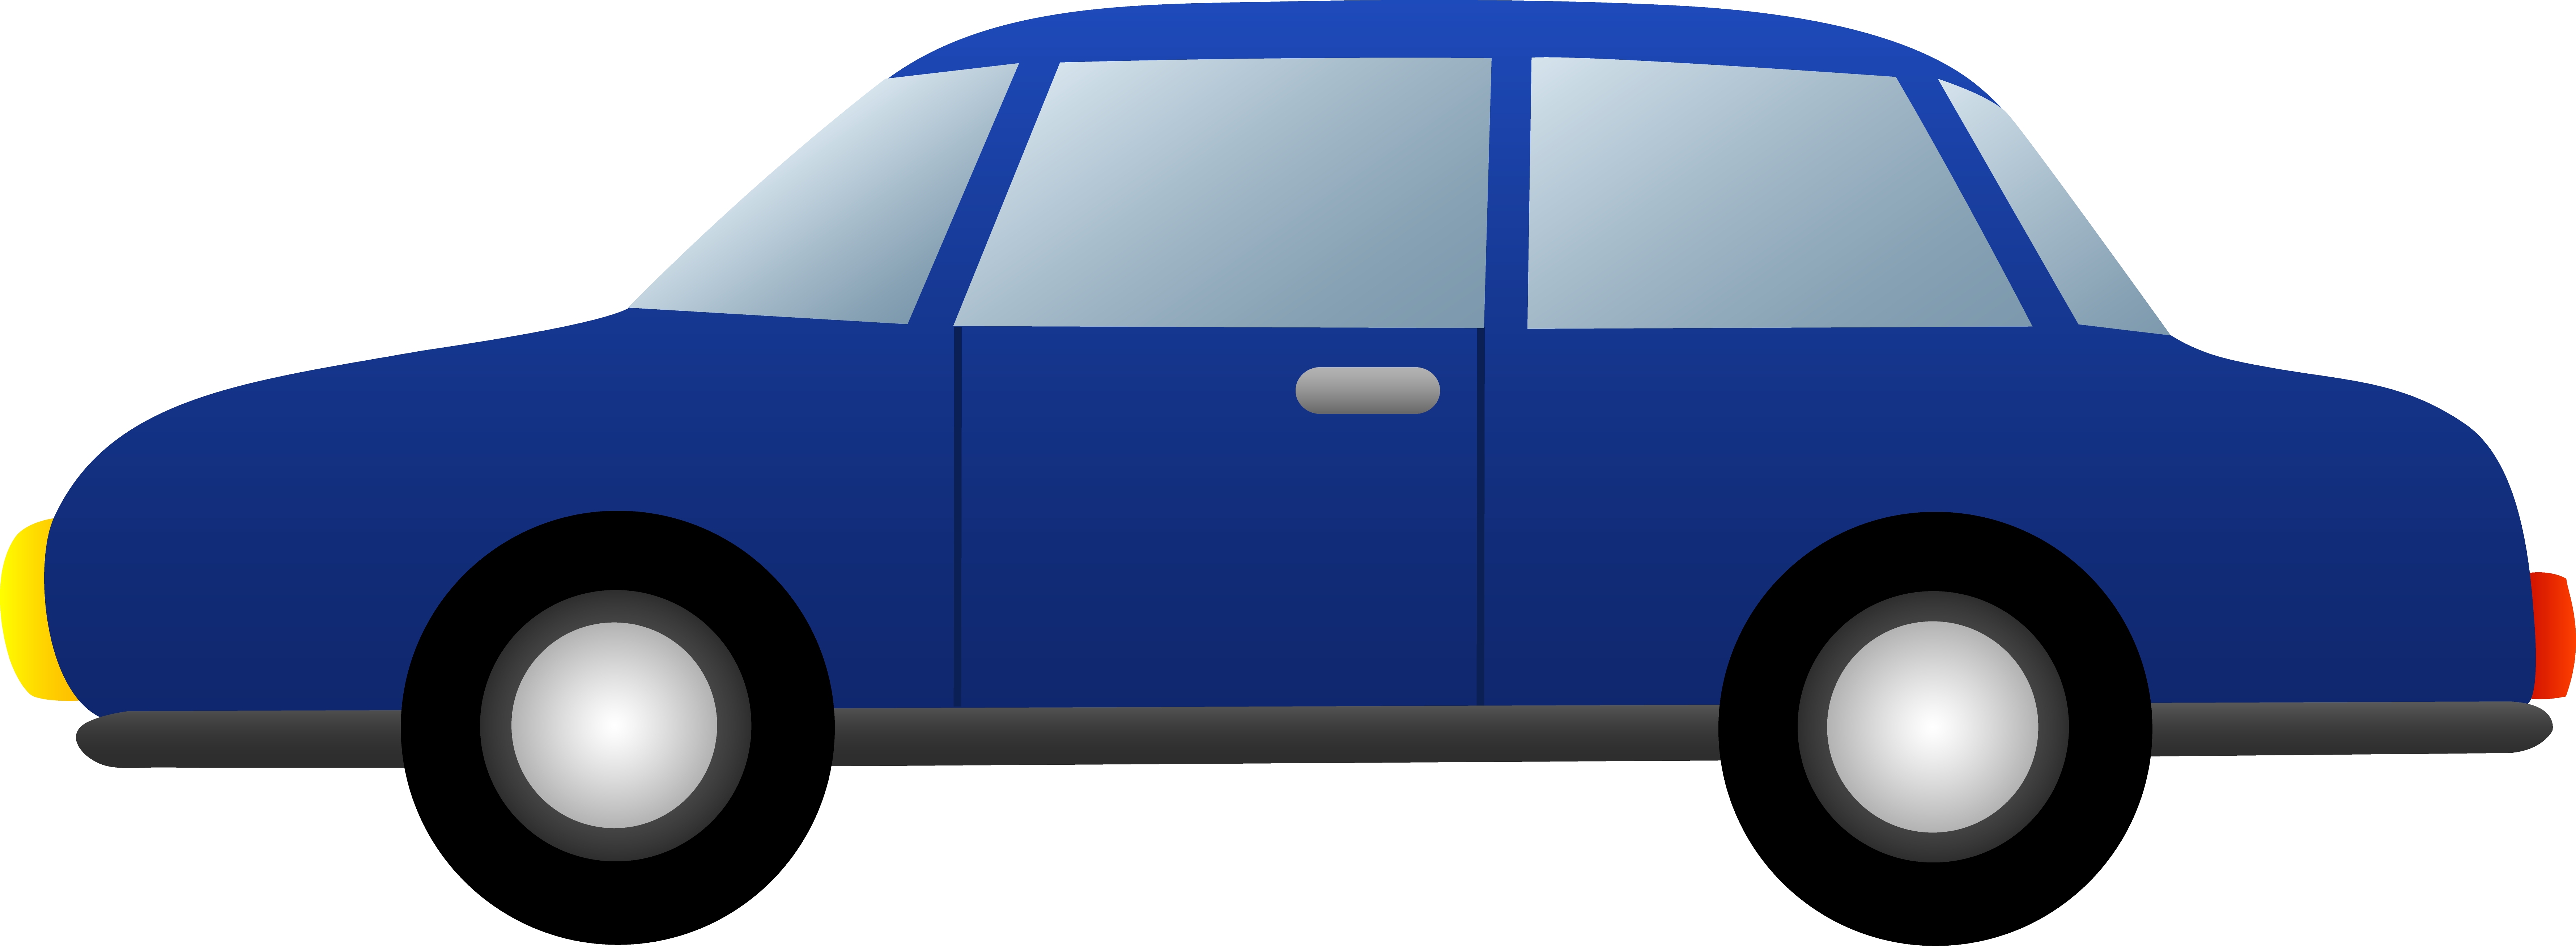 7122x2615 Cartoon Car Clipart